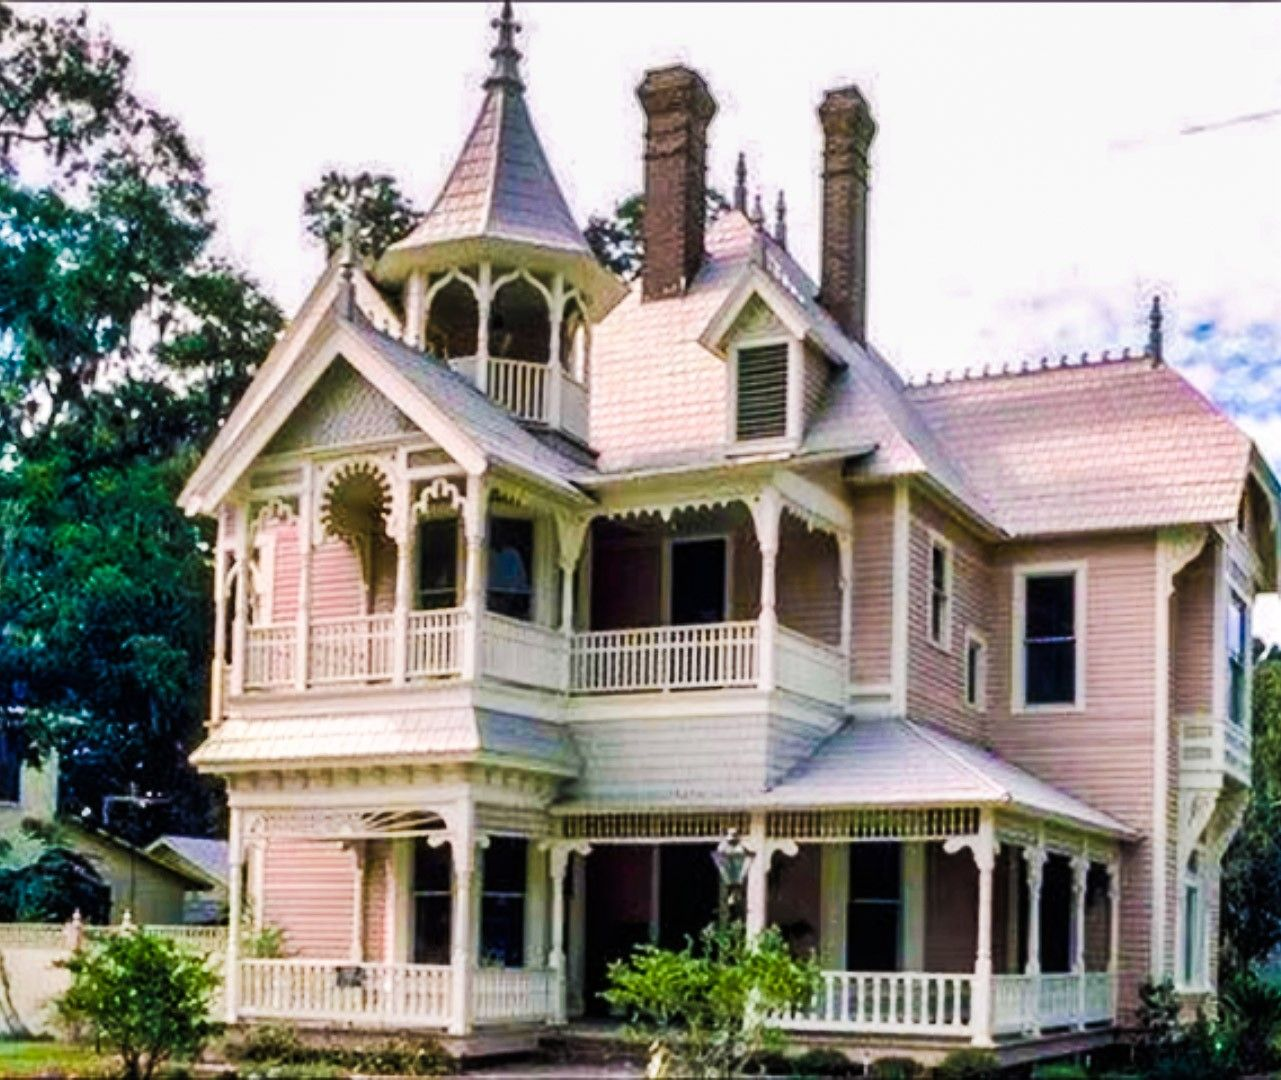 Pin By Michael Klein On 0 0 Victorian Houses Victorian Homes Victorian Style Homes Queen Anne House